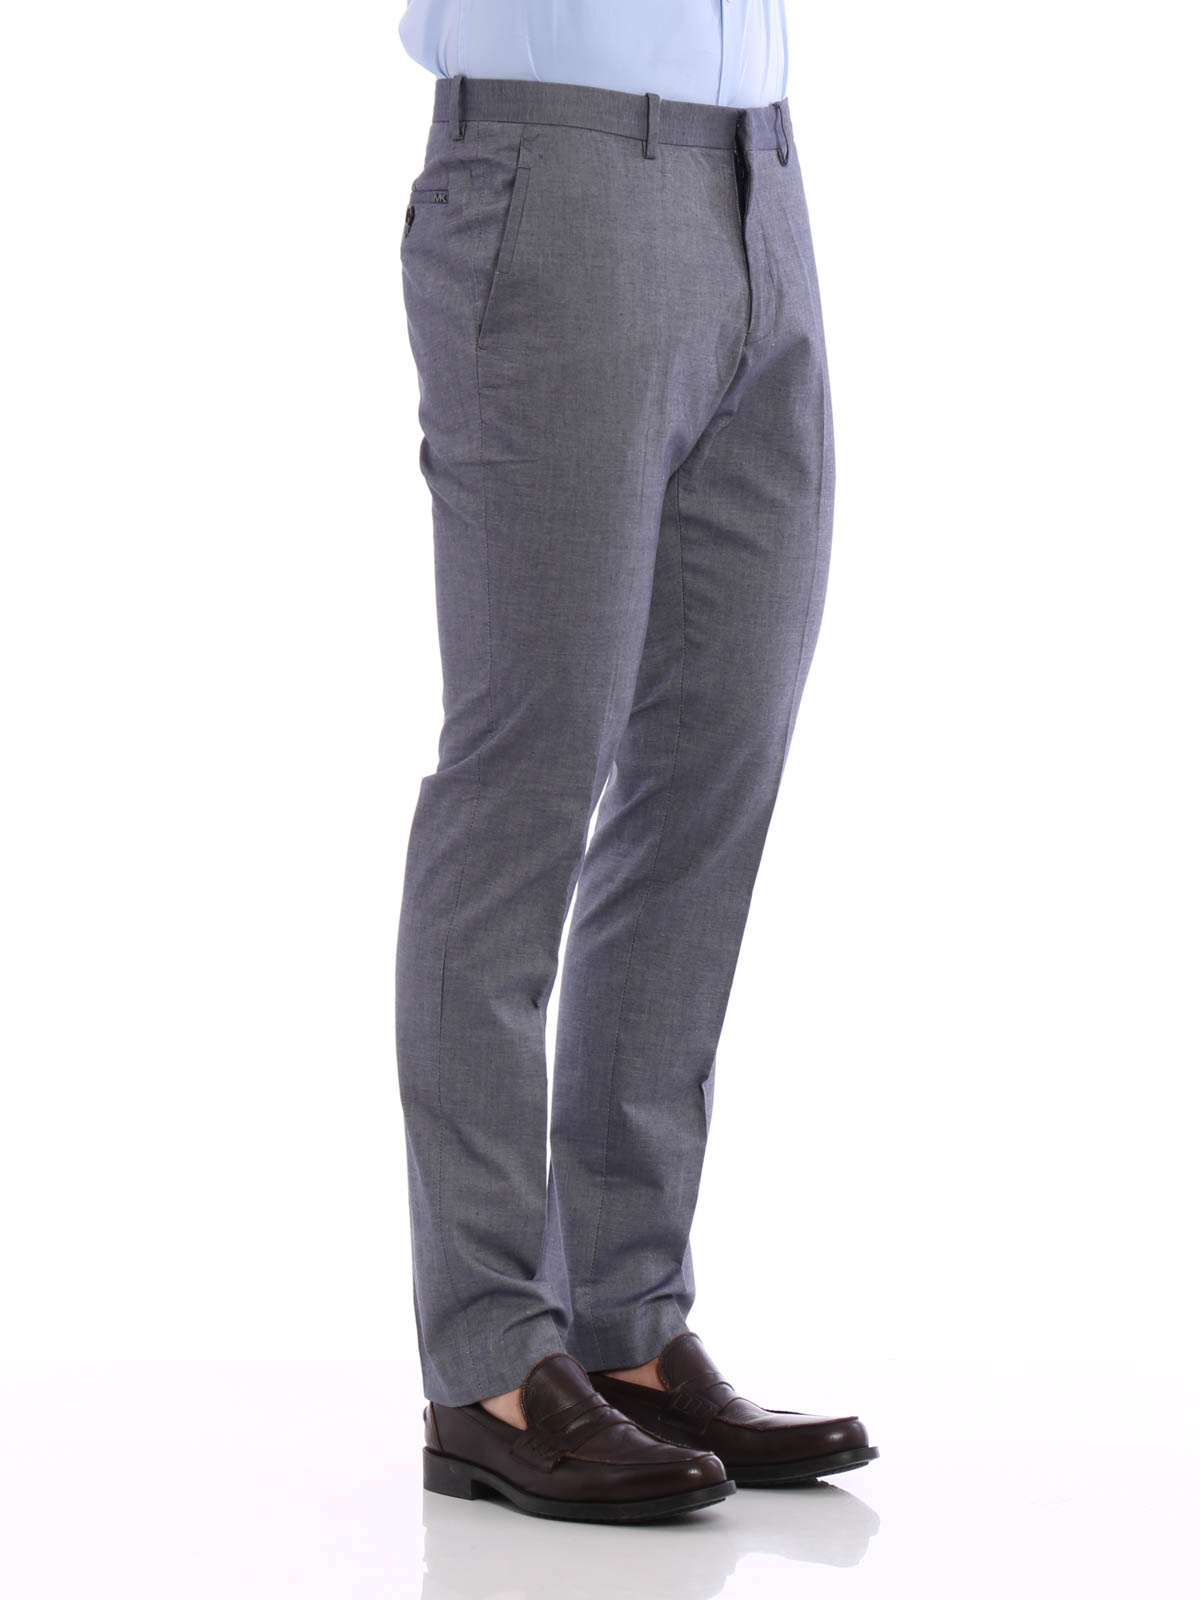 Tailored cotton trousers by Michael Kors